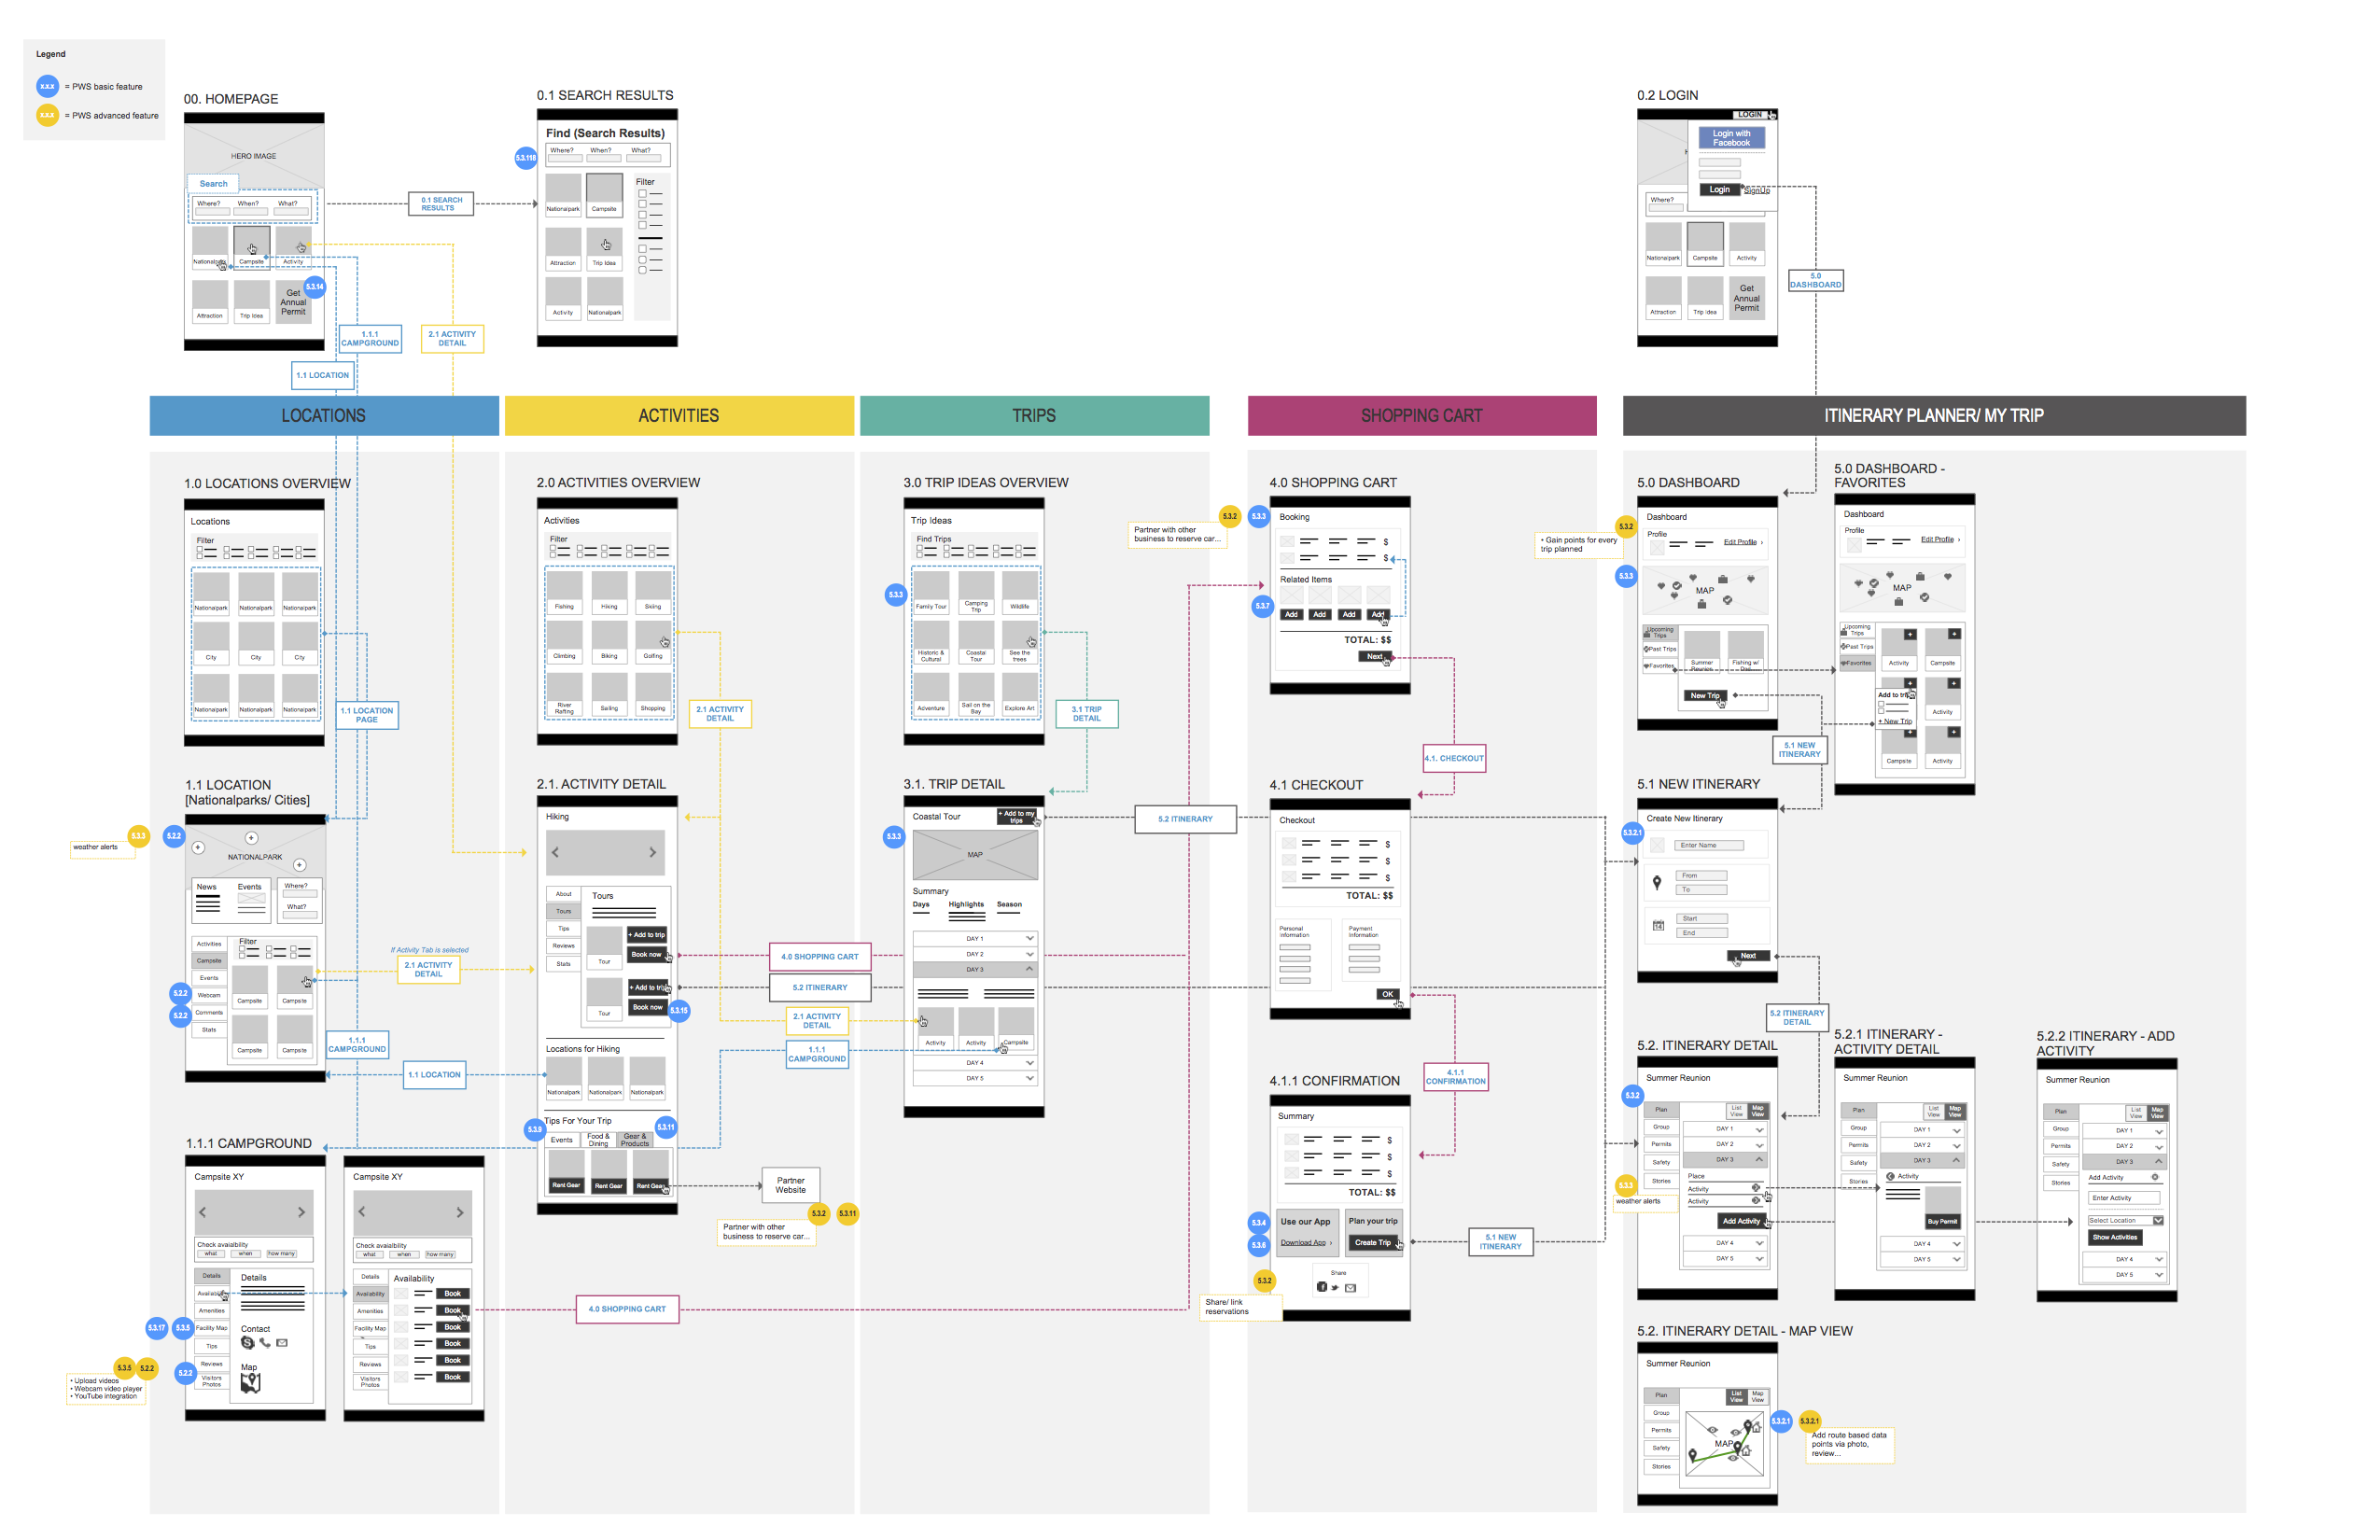 Workflow Ux - Google Search